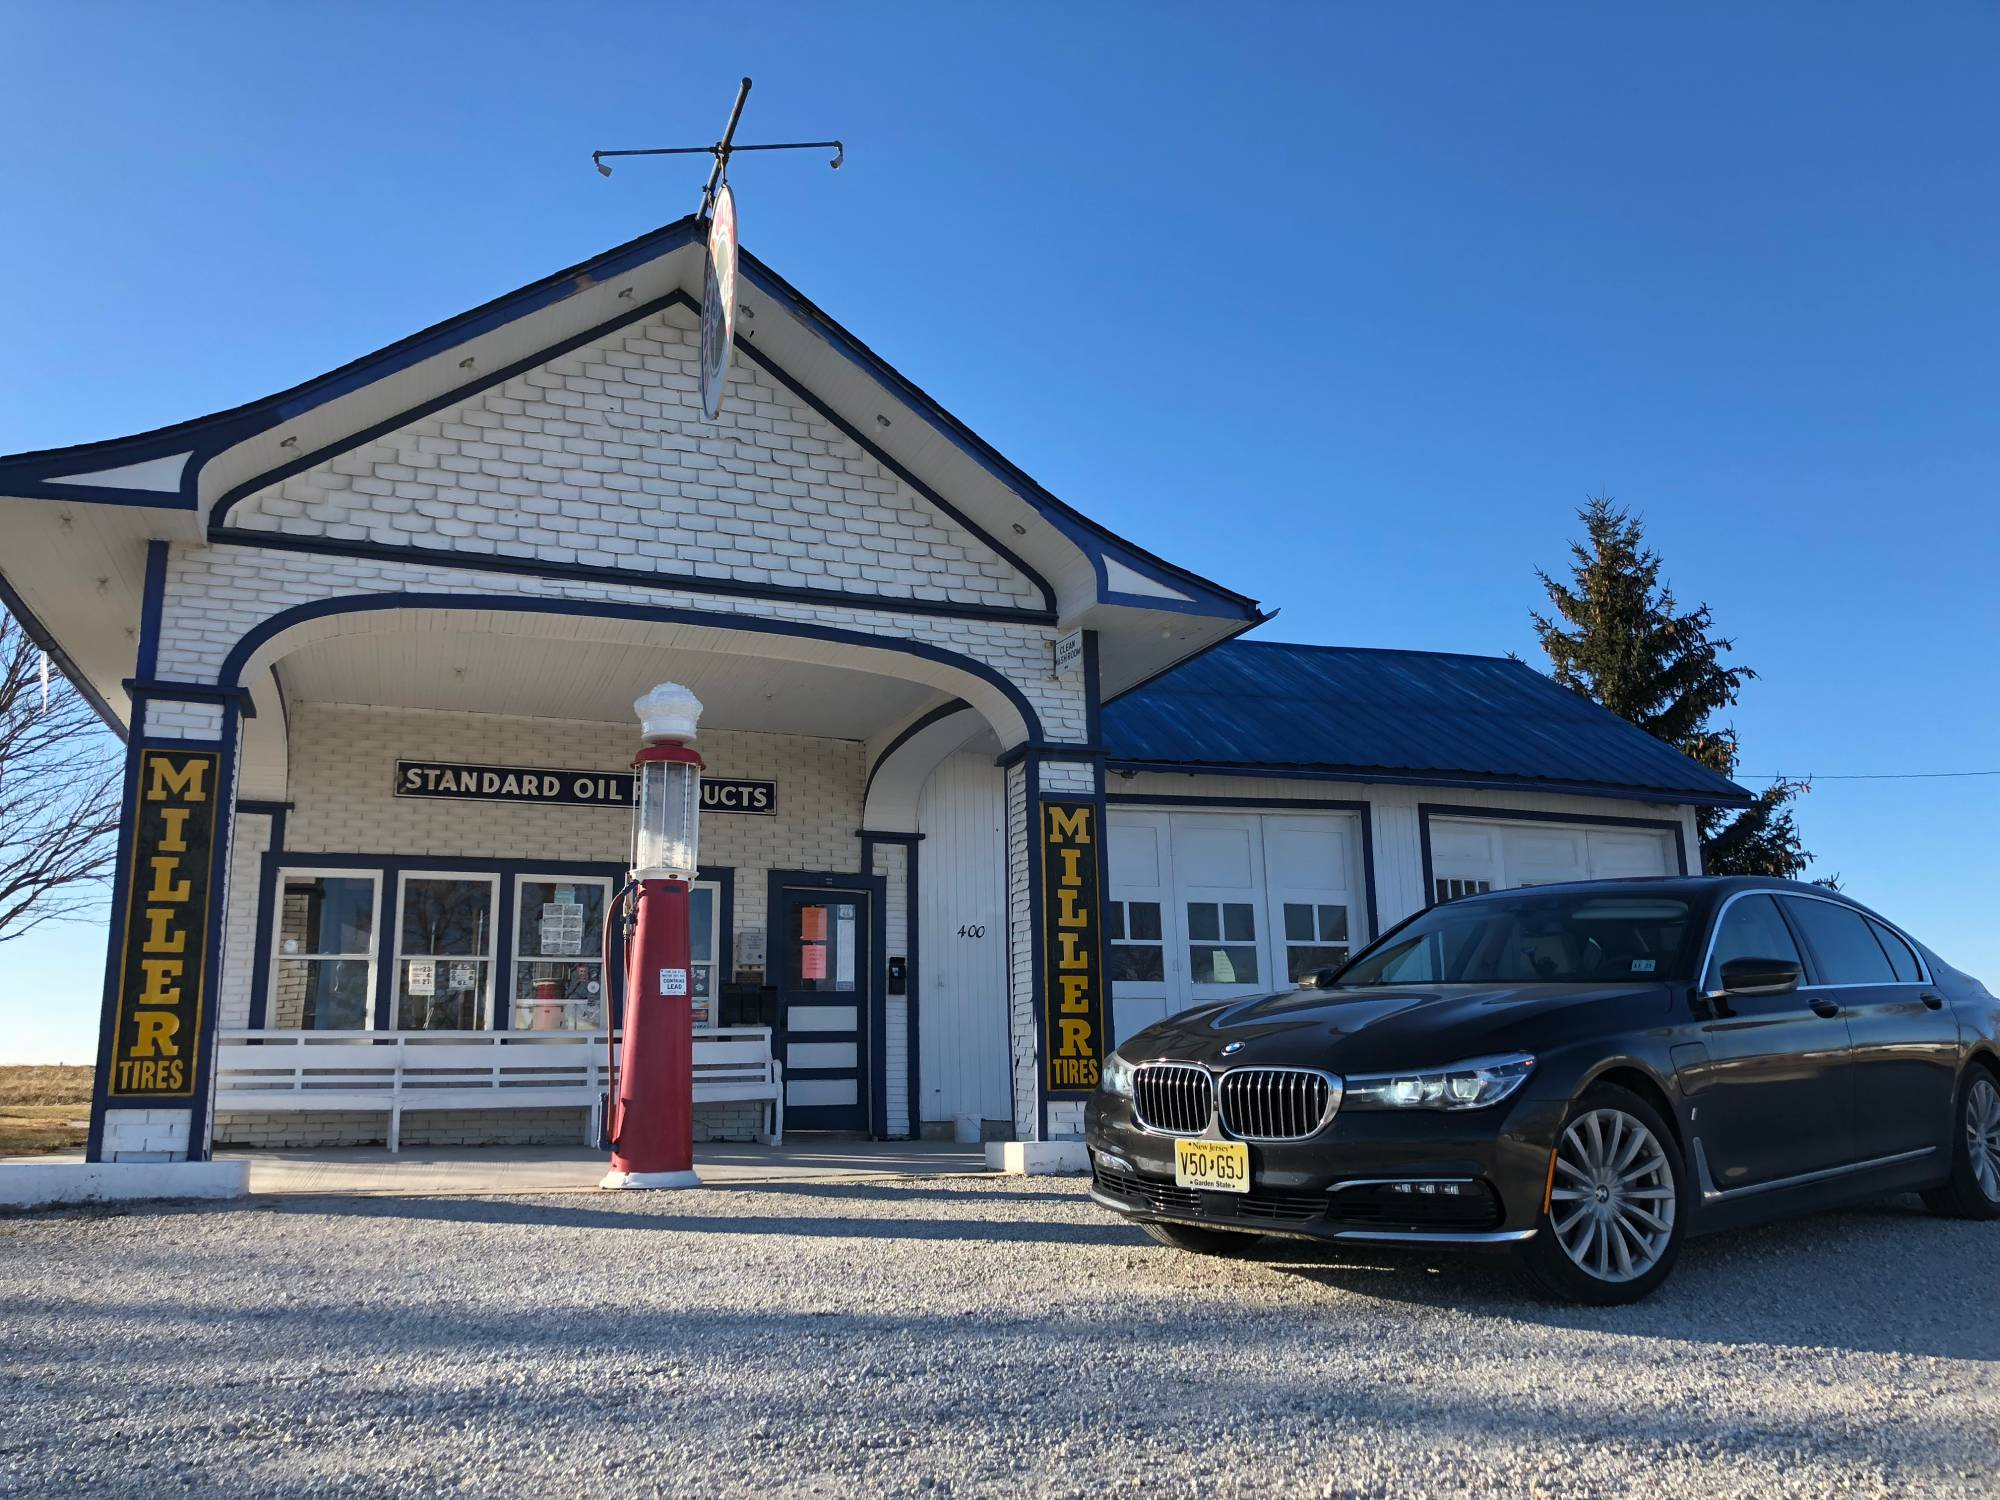 7-days in a 7-series